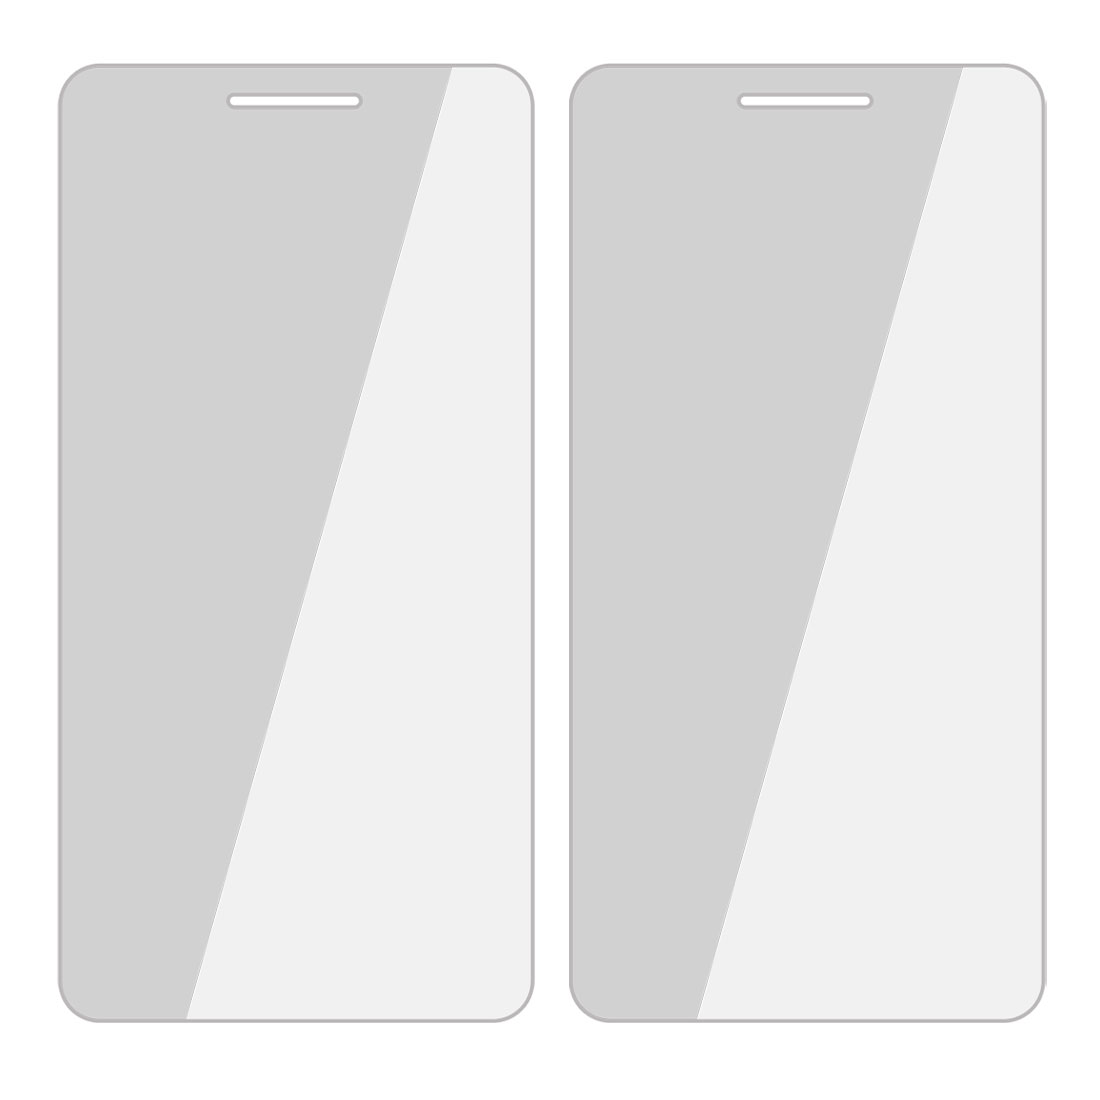 2 Pcs Anti-dust Clear Screen Protector Film Guards for Huawei U9508